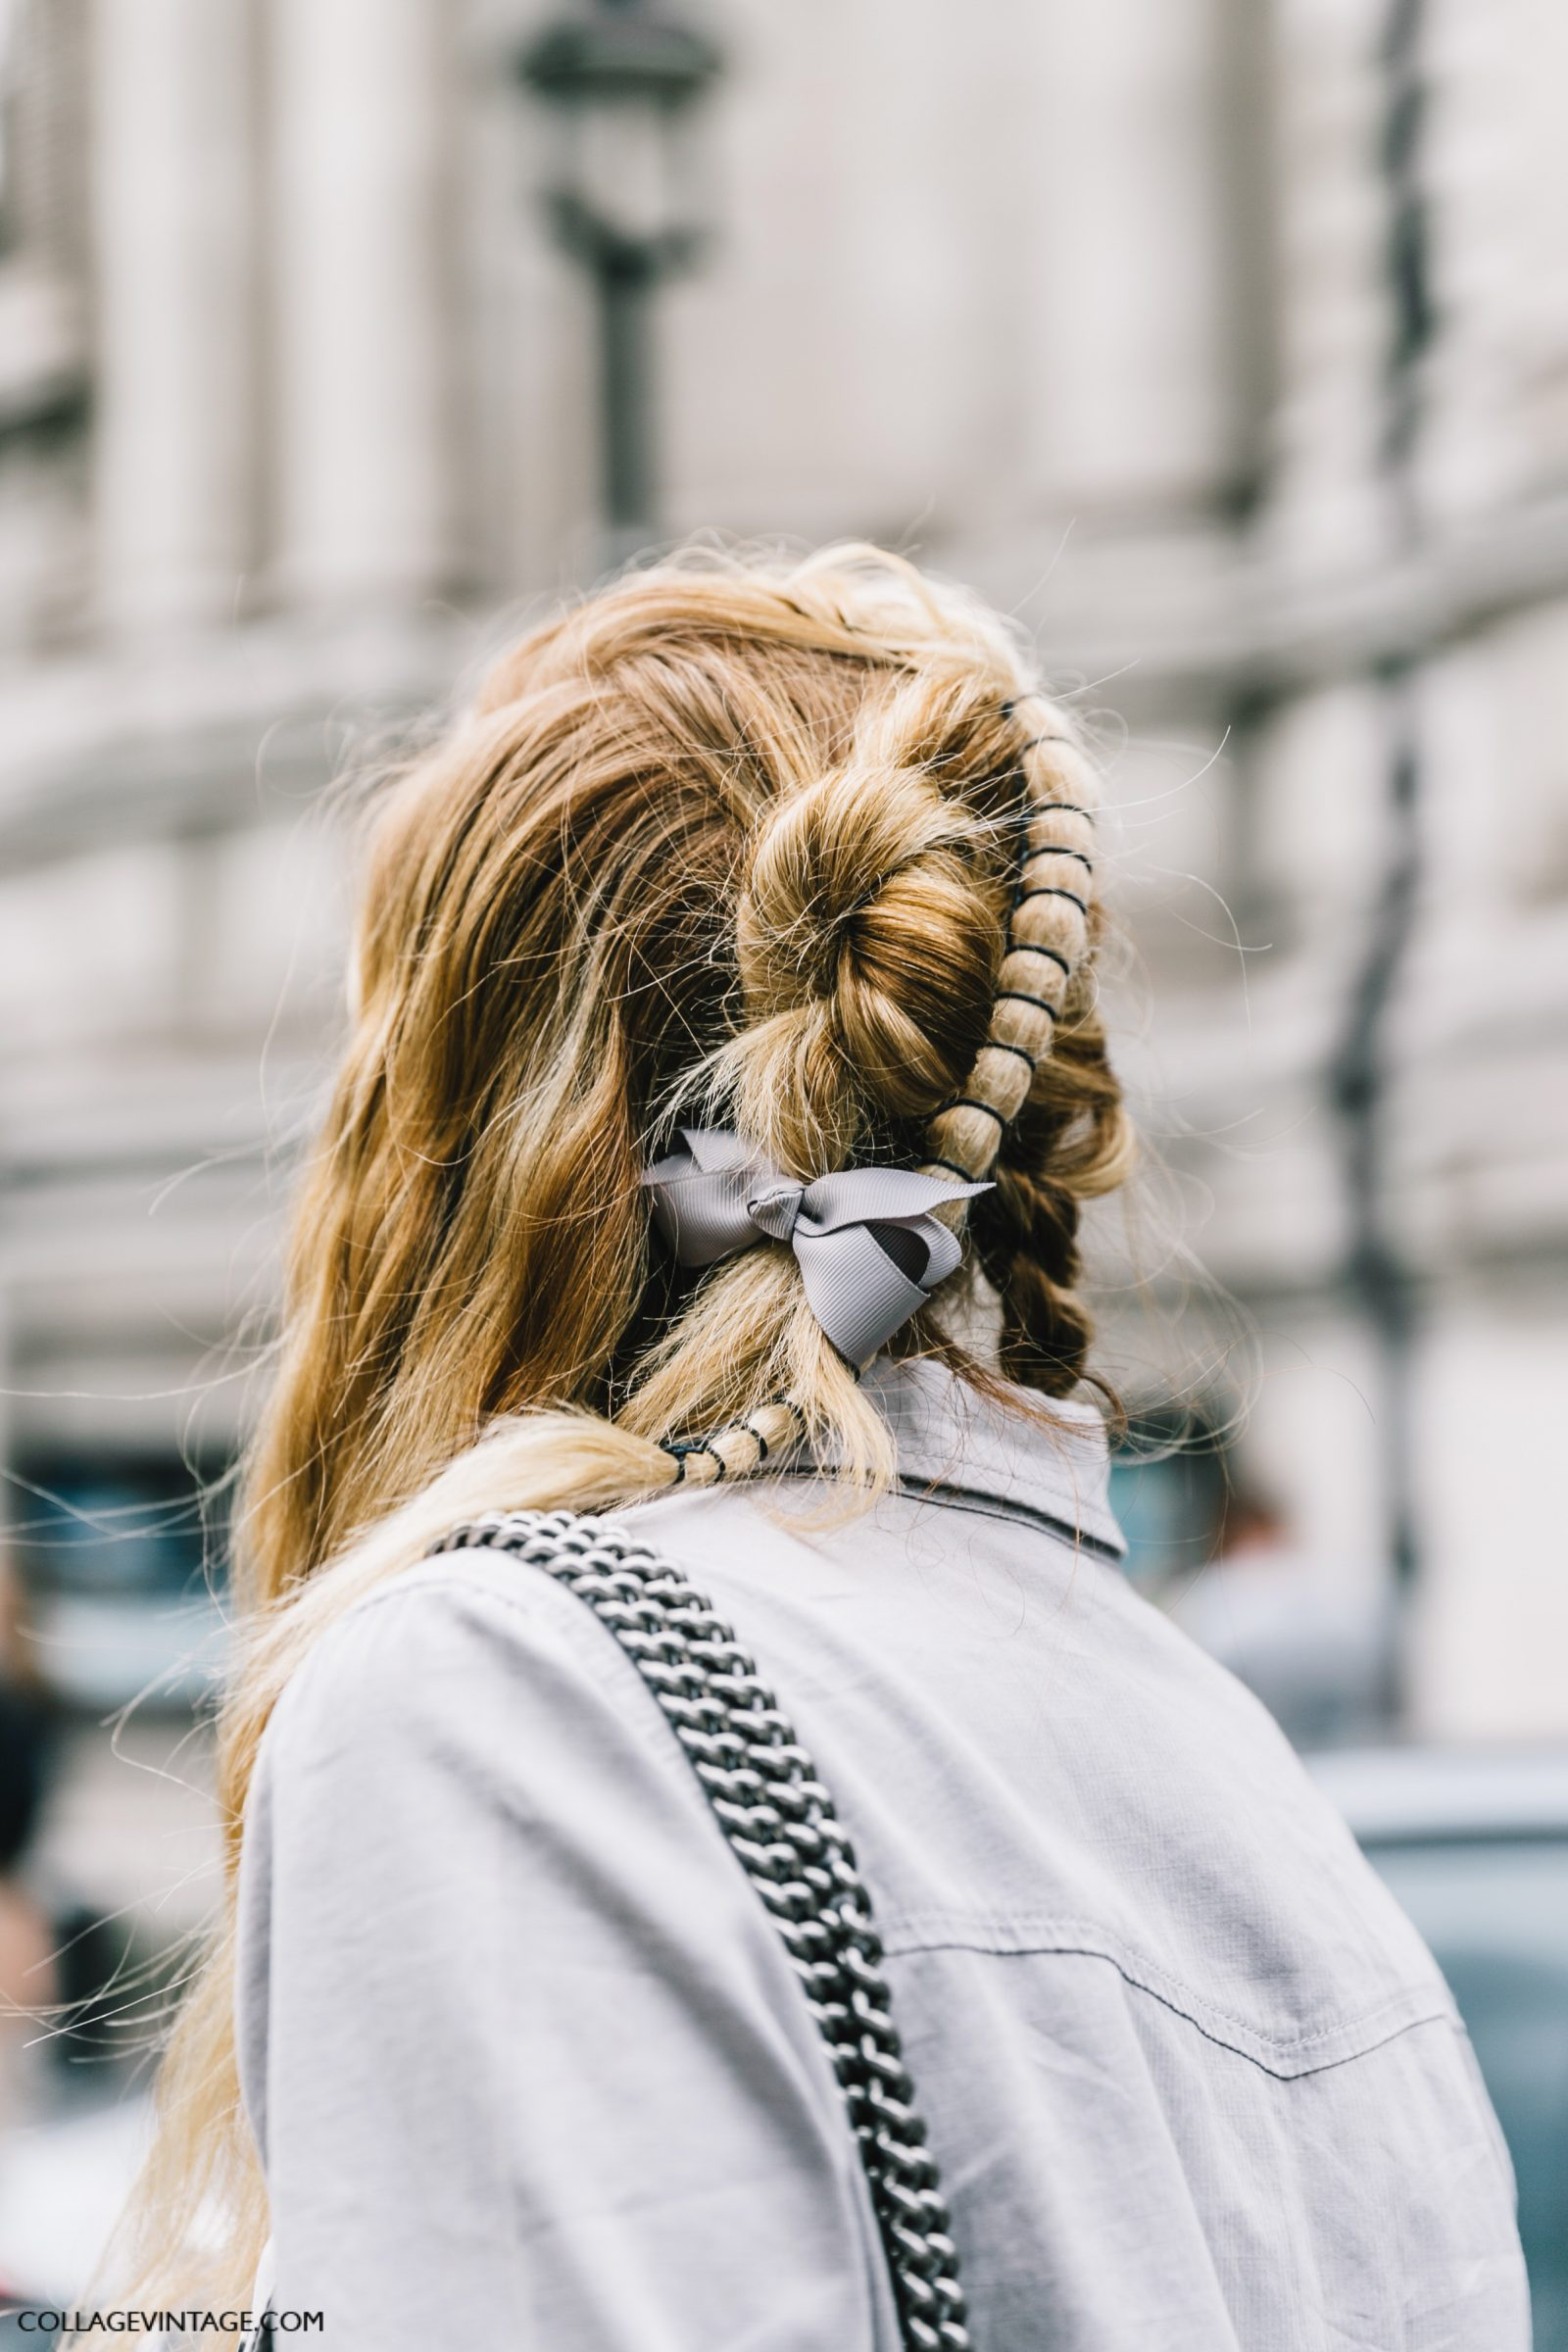 lfw-london_fashion_week_ss17-street_style-outfits-collage_vintage-vintage-topshop_unique-anya-mulberry-preen-97